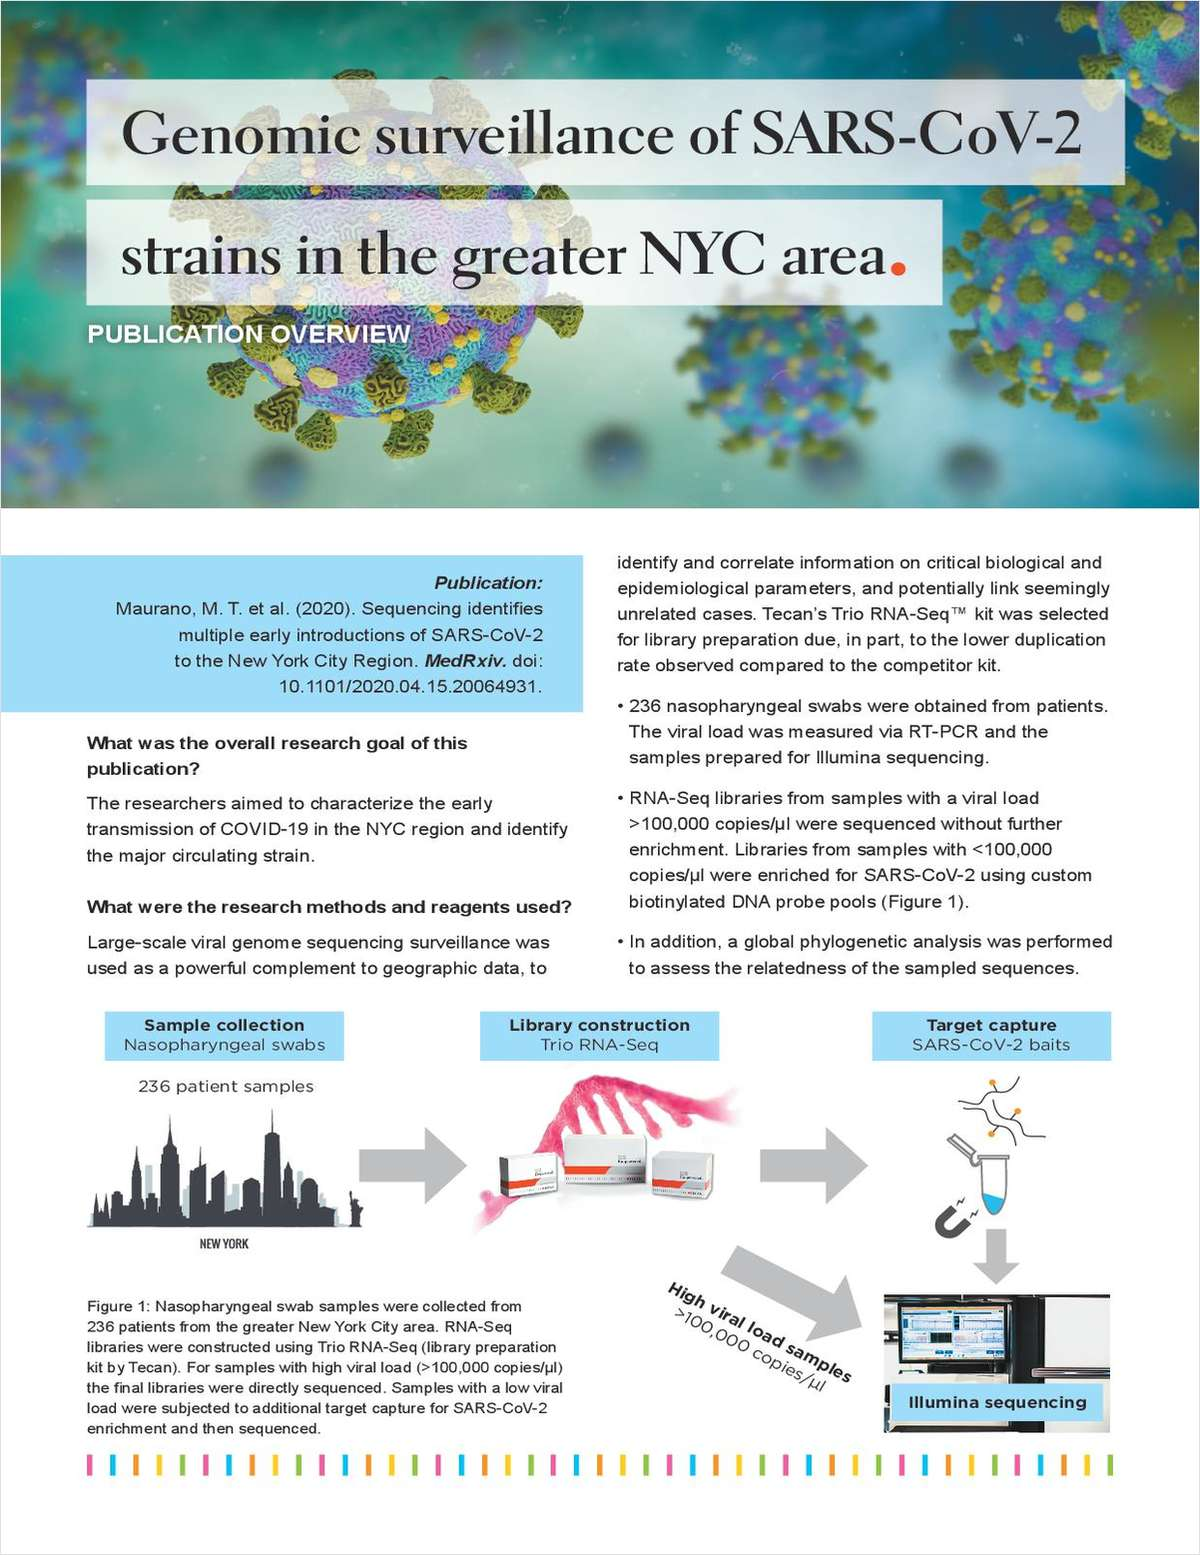 Genomic Surveillance of SARS-CoV-2 Strains in the Greater NYC Area